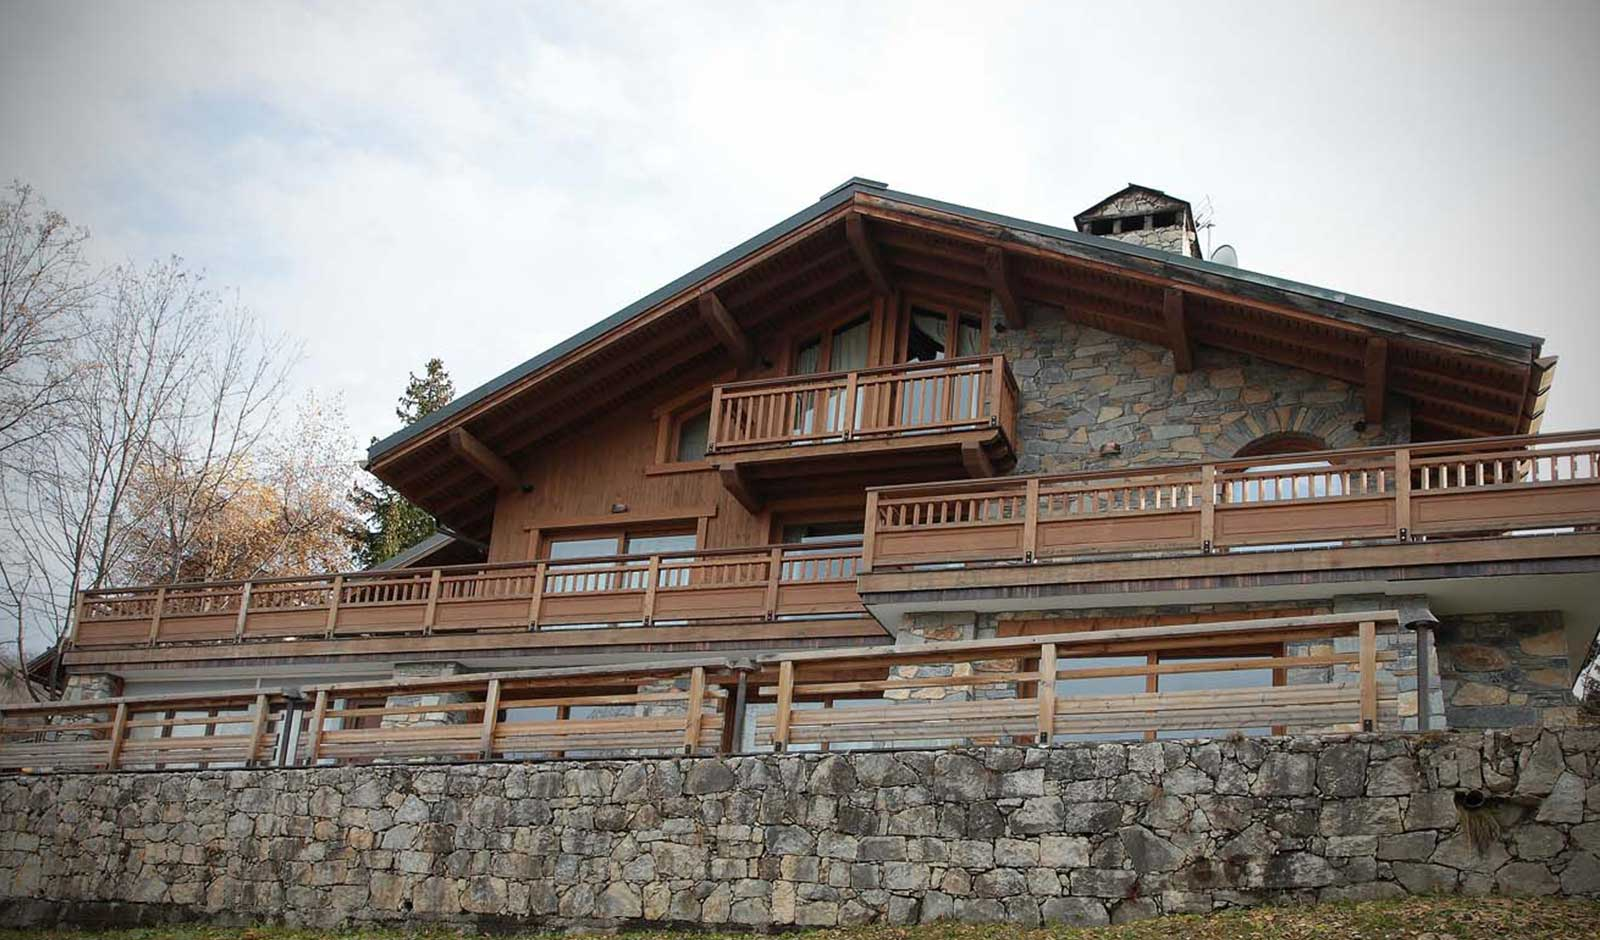 chalet-bonhomme-de-neige-5-atelier-crea-and-co-architecte-design-project-manager-meribel-savoie